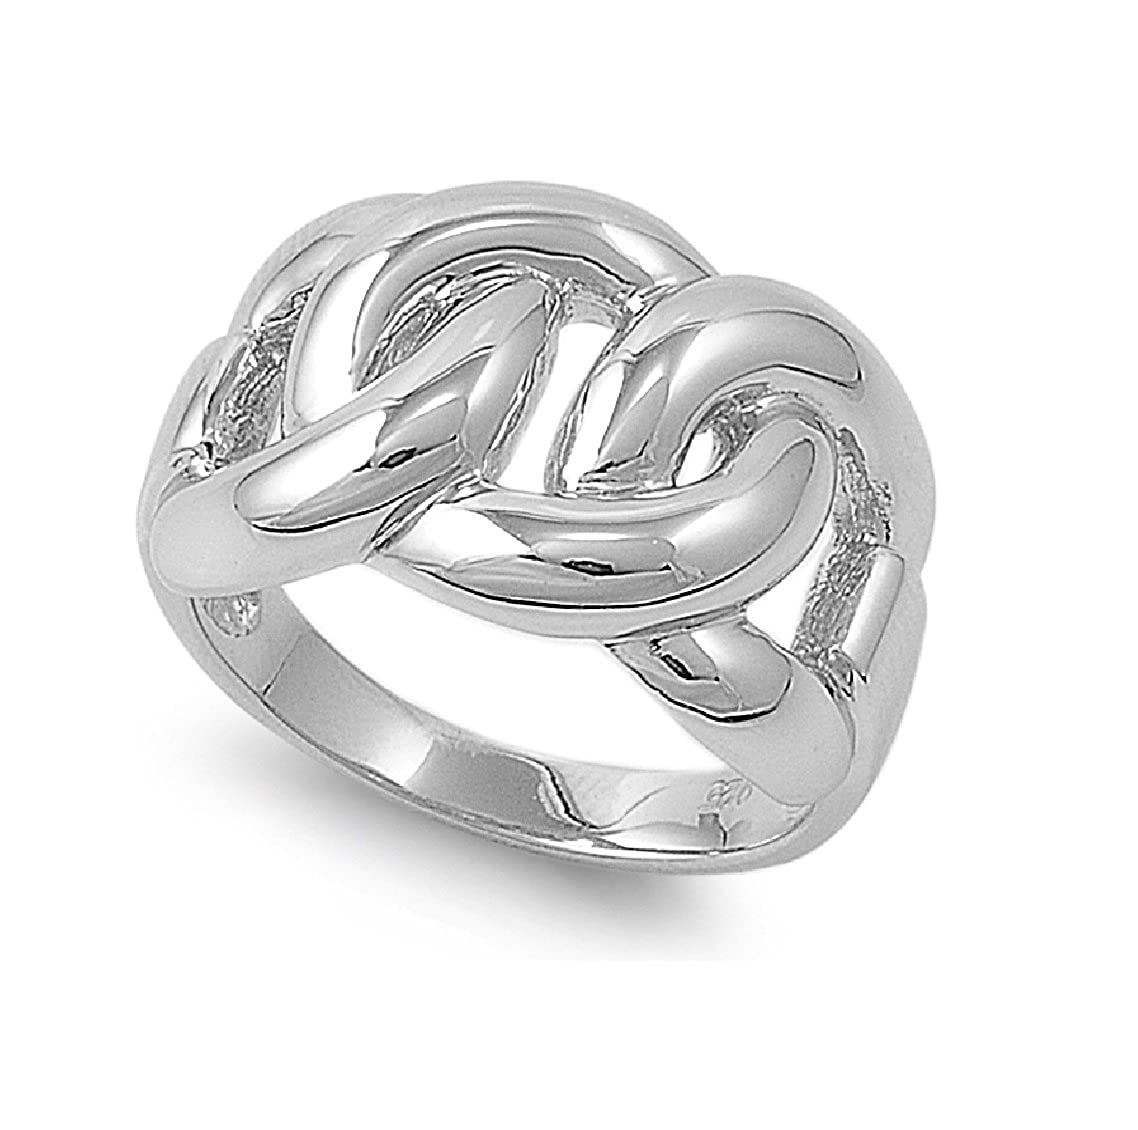 Princess Kylie 925 Sterling Silver Chain Link Style Design Ring